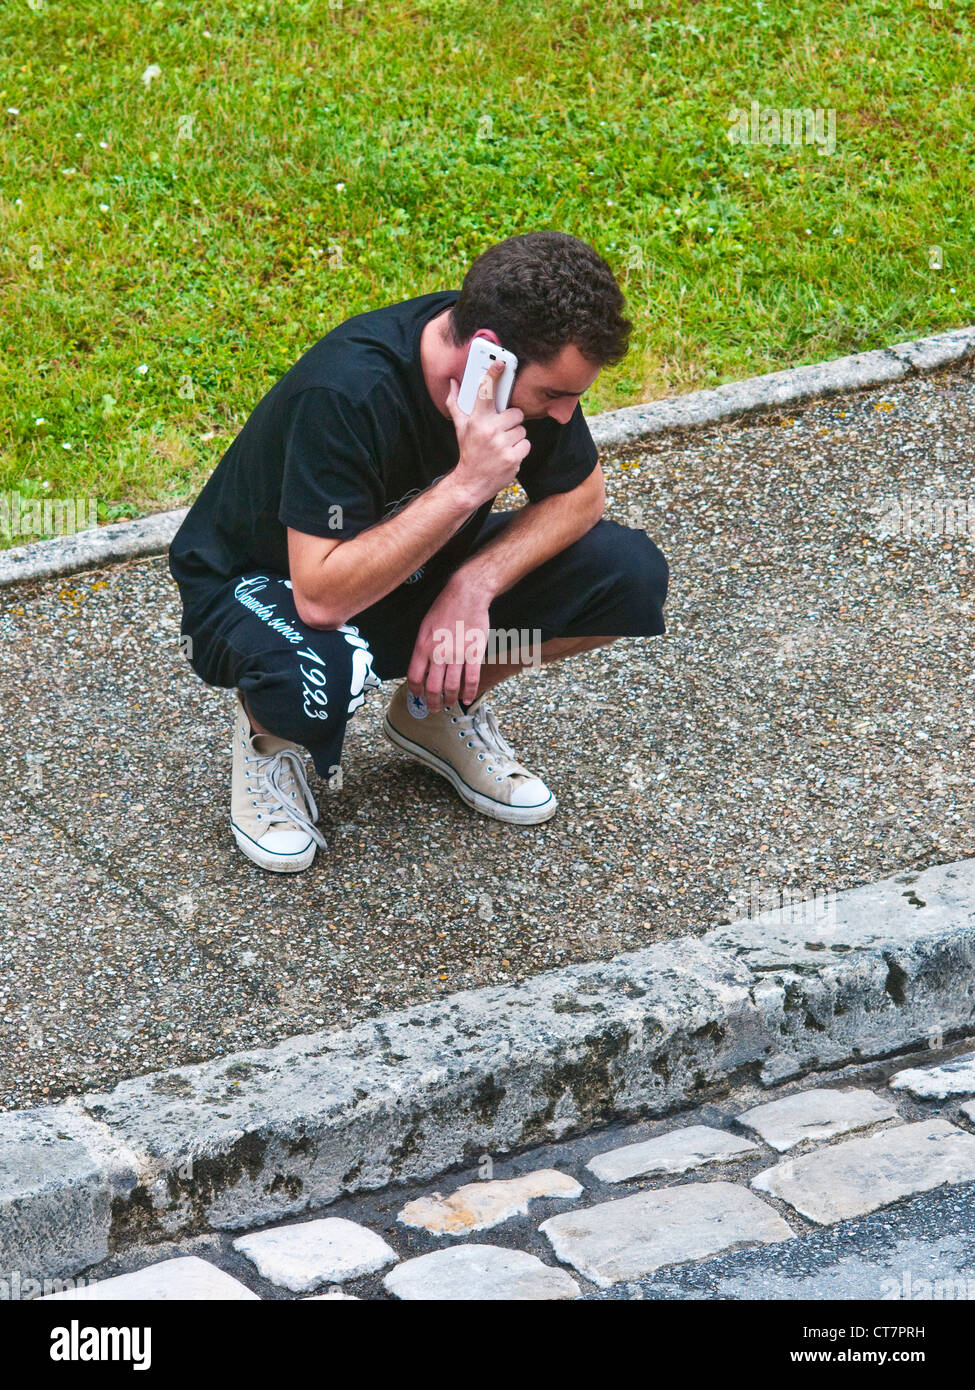 Younger man with telephone crouching on pavement - France. - Stock Image